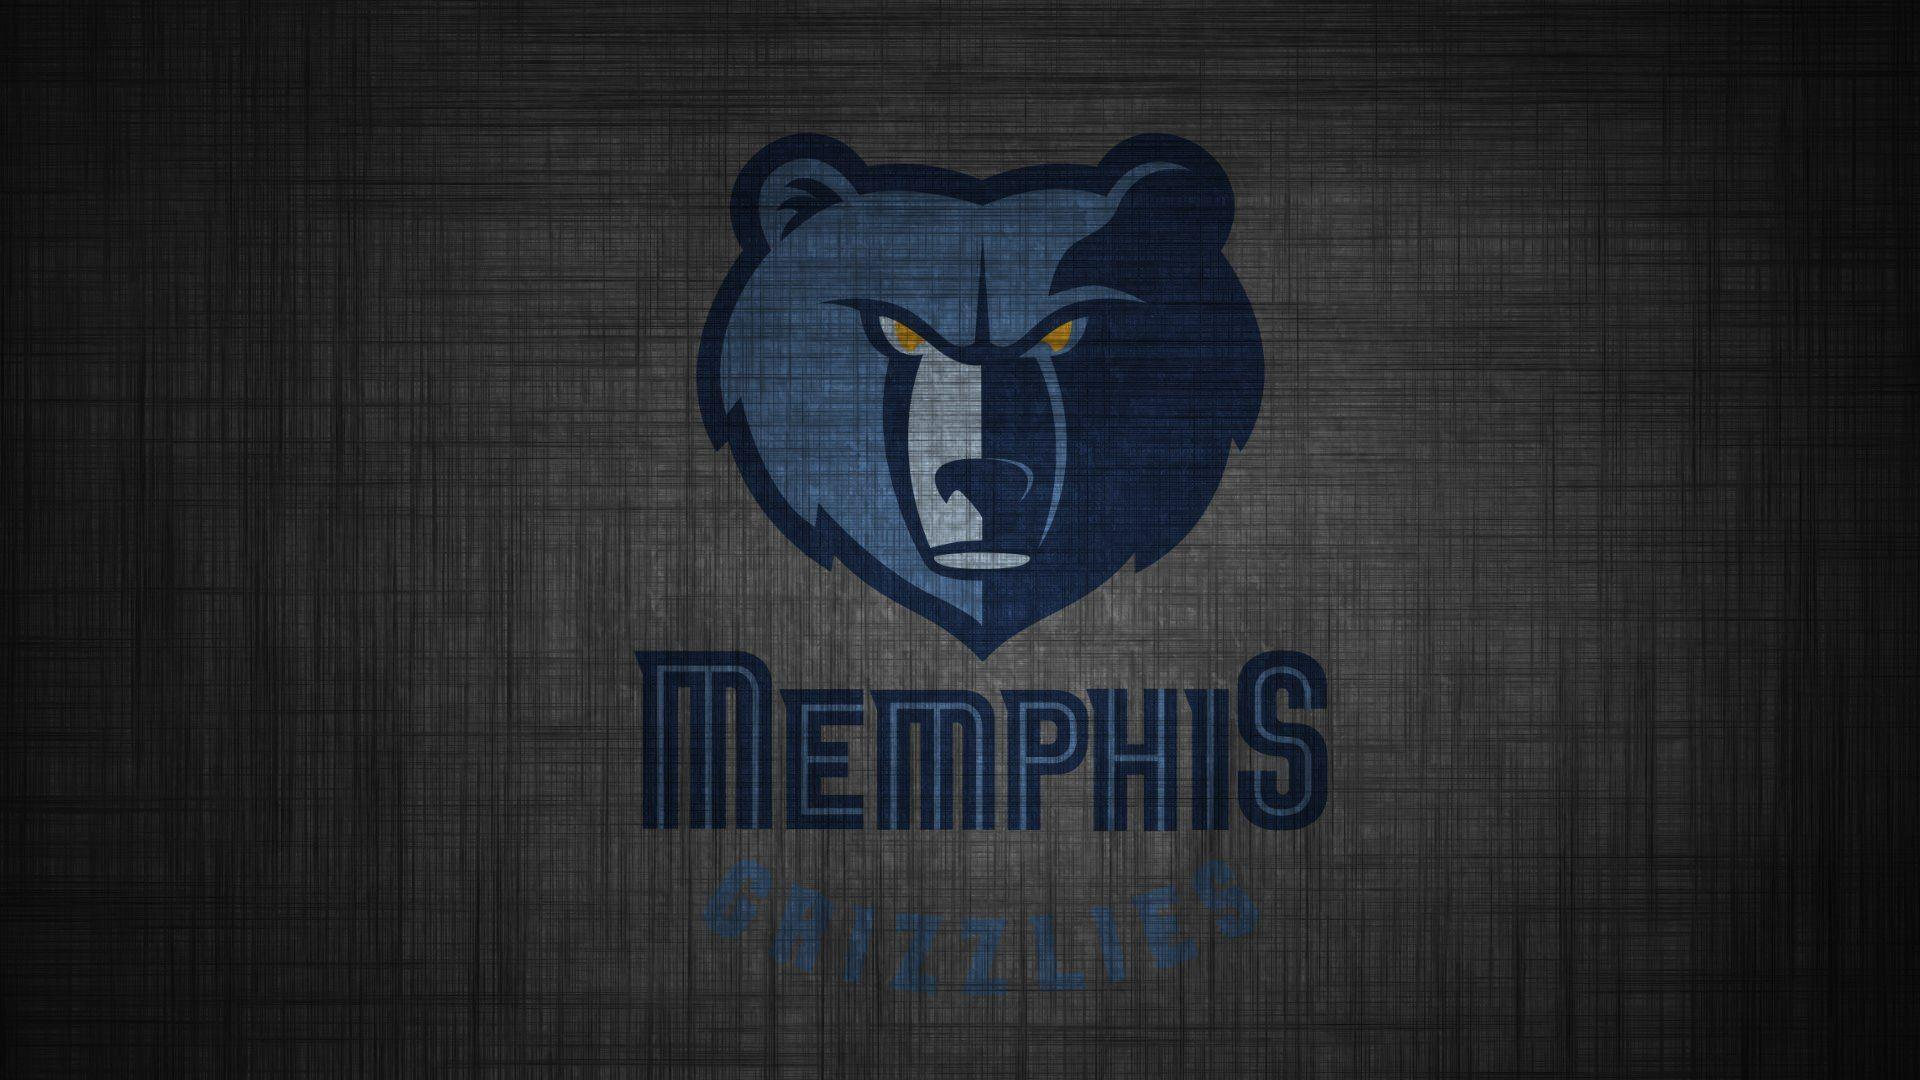 Memphis Grizzlies Wallpapers High Resolution and Quality Download